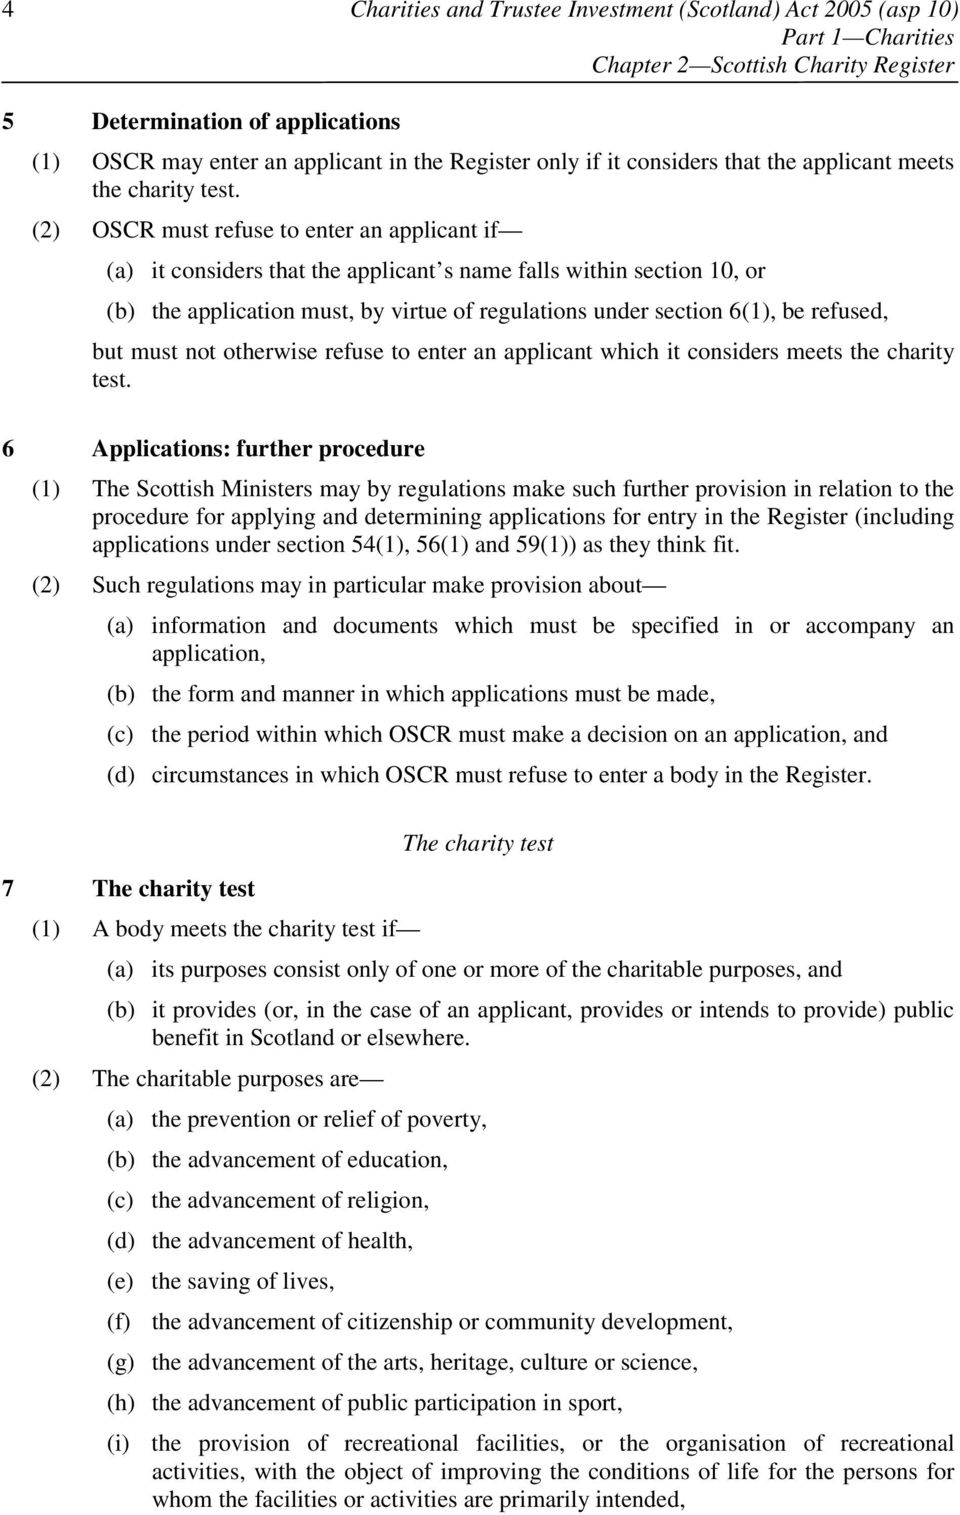 (2) OSCR must refuse to enter an applicant if (a) it considers that the applicant s name falls within section 10, or (b) the application must, by virtue of regulations under section 6(1), be refused,